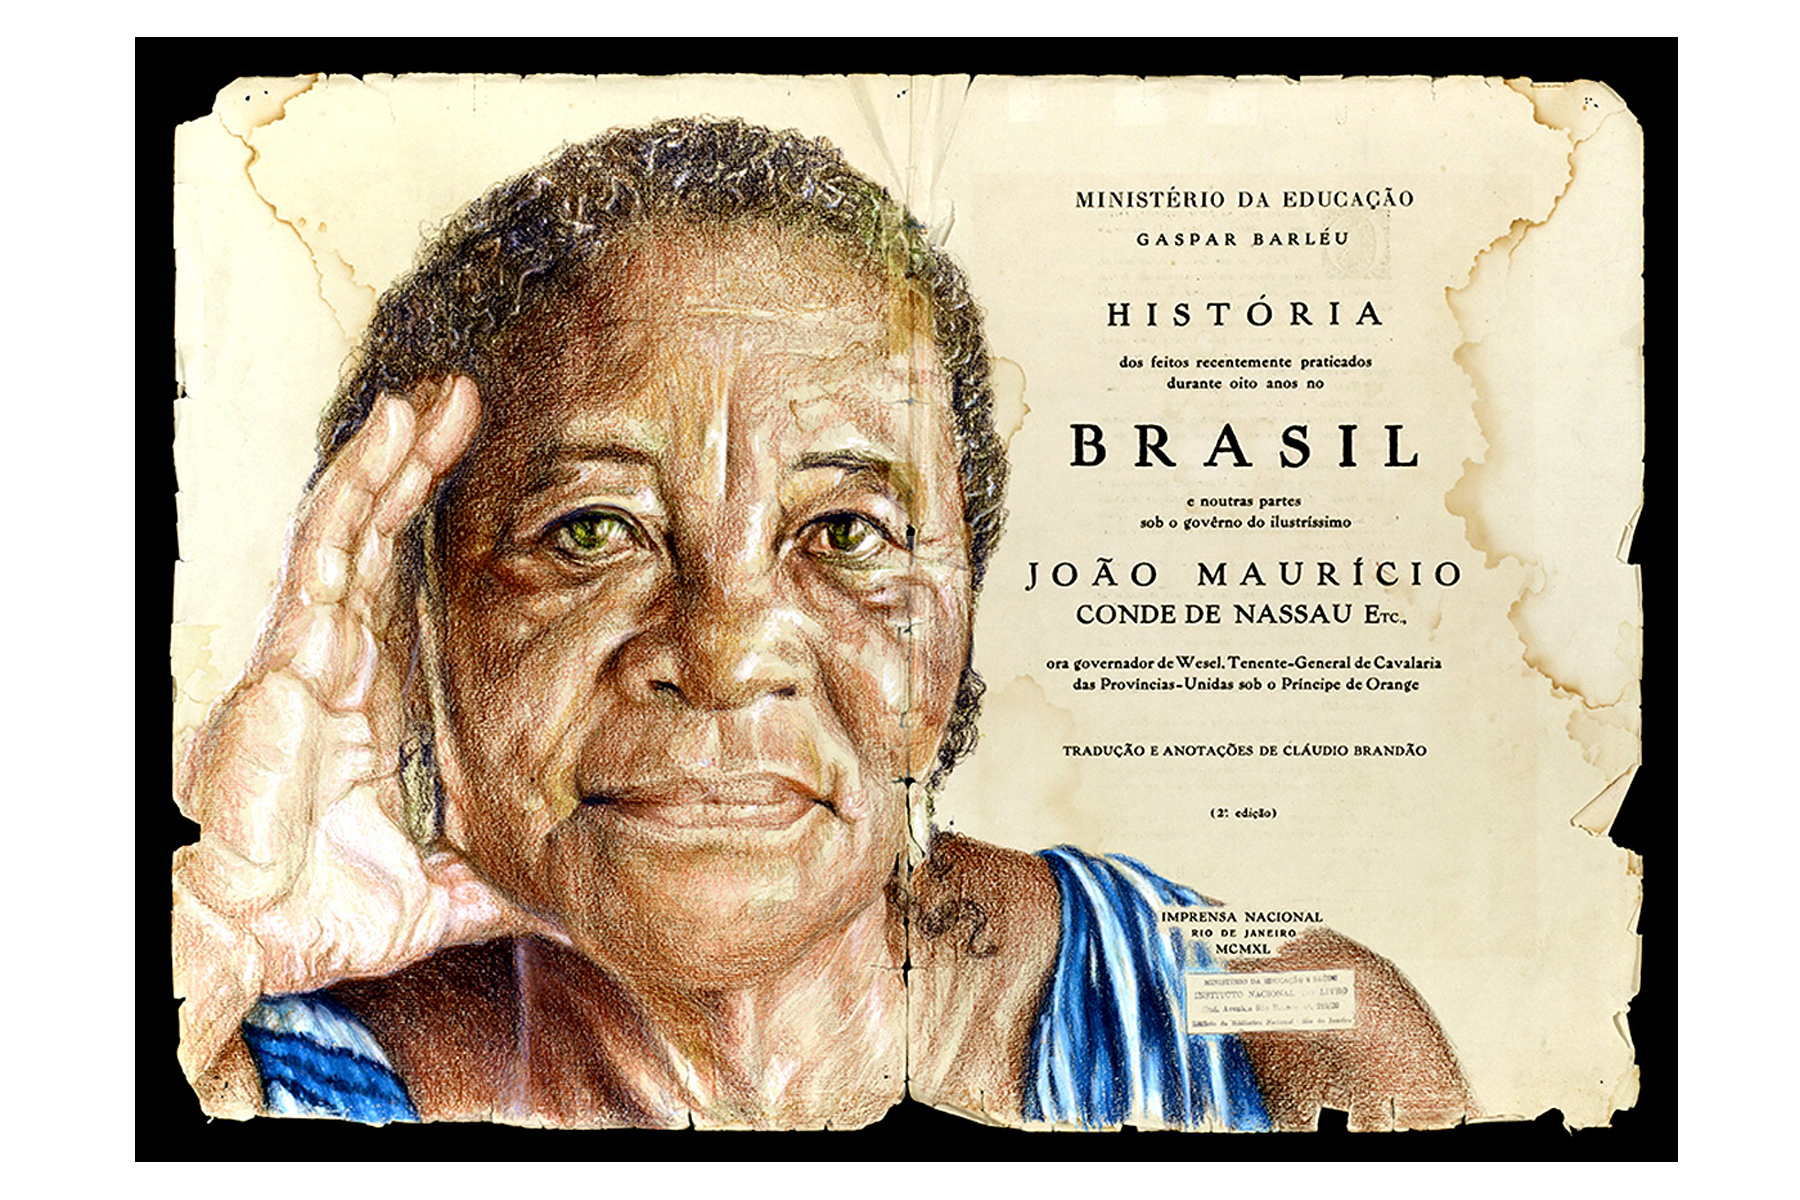 "J Michael Walker, Unintended Consequences: Arighting What's Written, 2014. Color pencil on twin pages of the 1940 edition of ""Historia do Brasil"" by Gaspar Barleu, 18"" x 24""."